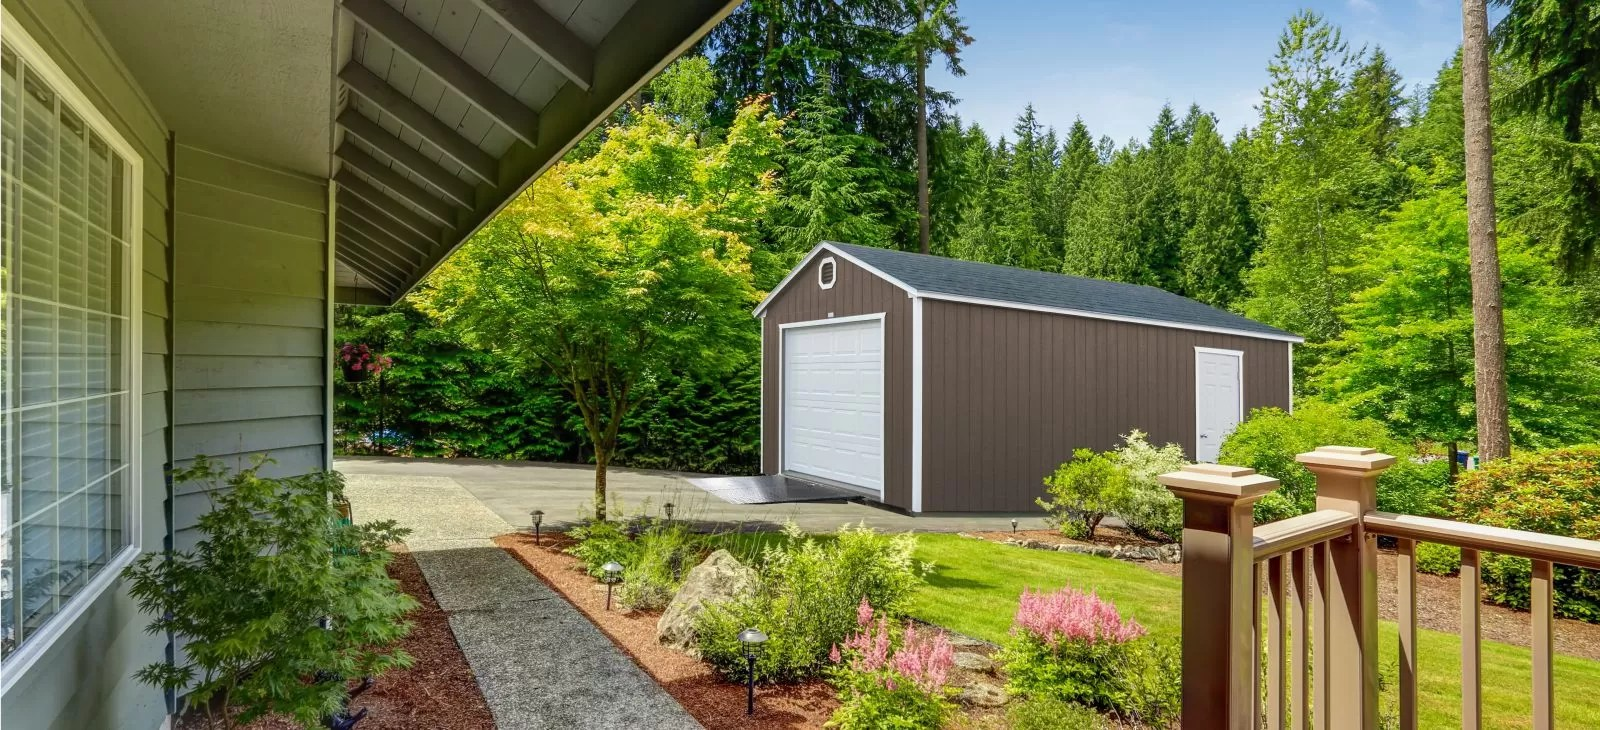 Garage Storage Buildings Ultimate Oregon Sheds And Portable Storage Building Since 1995